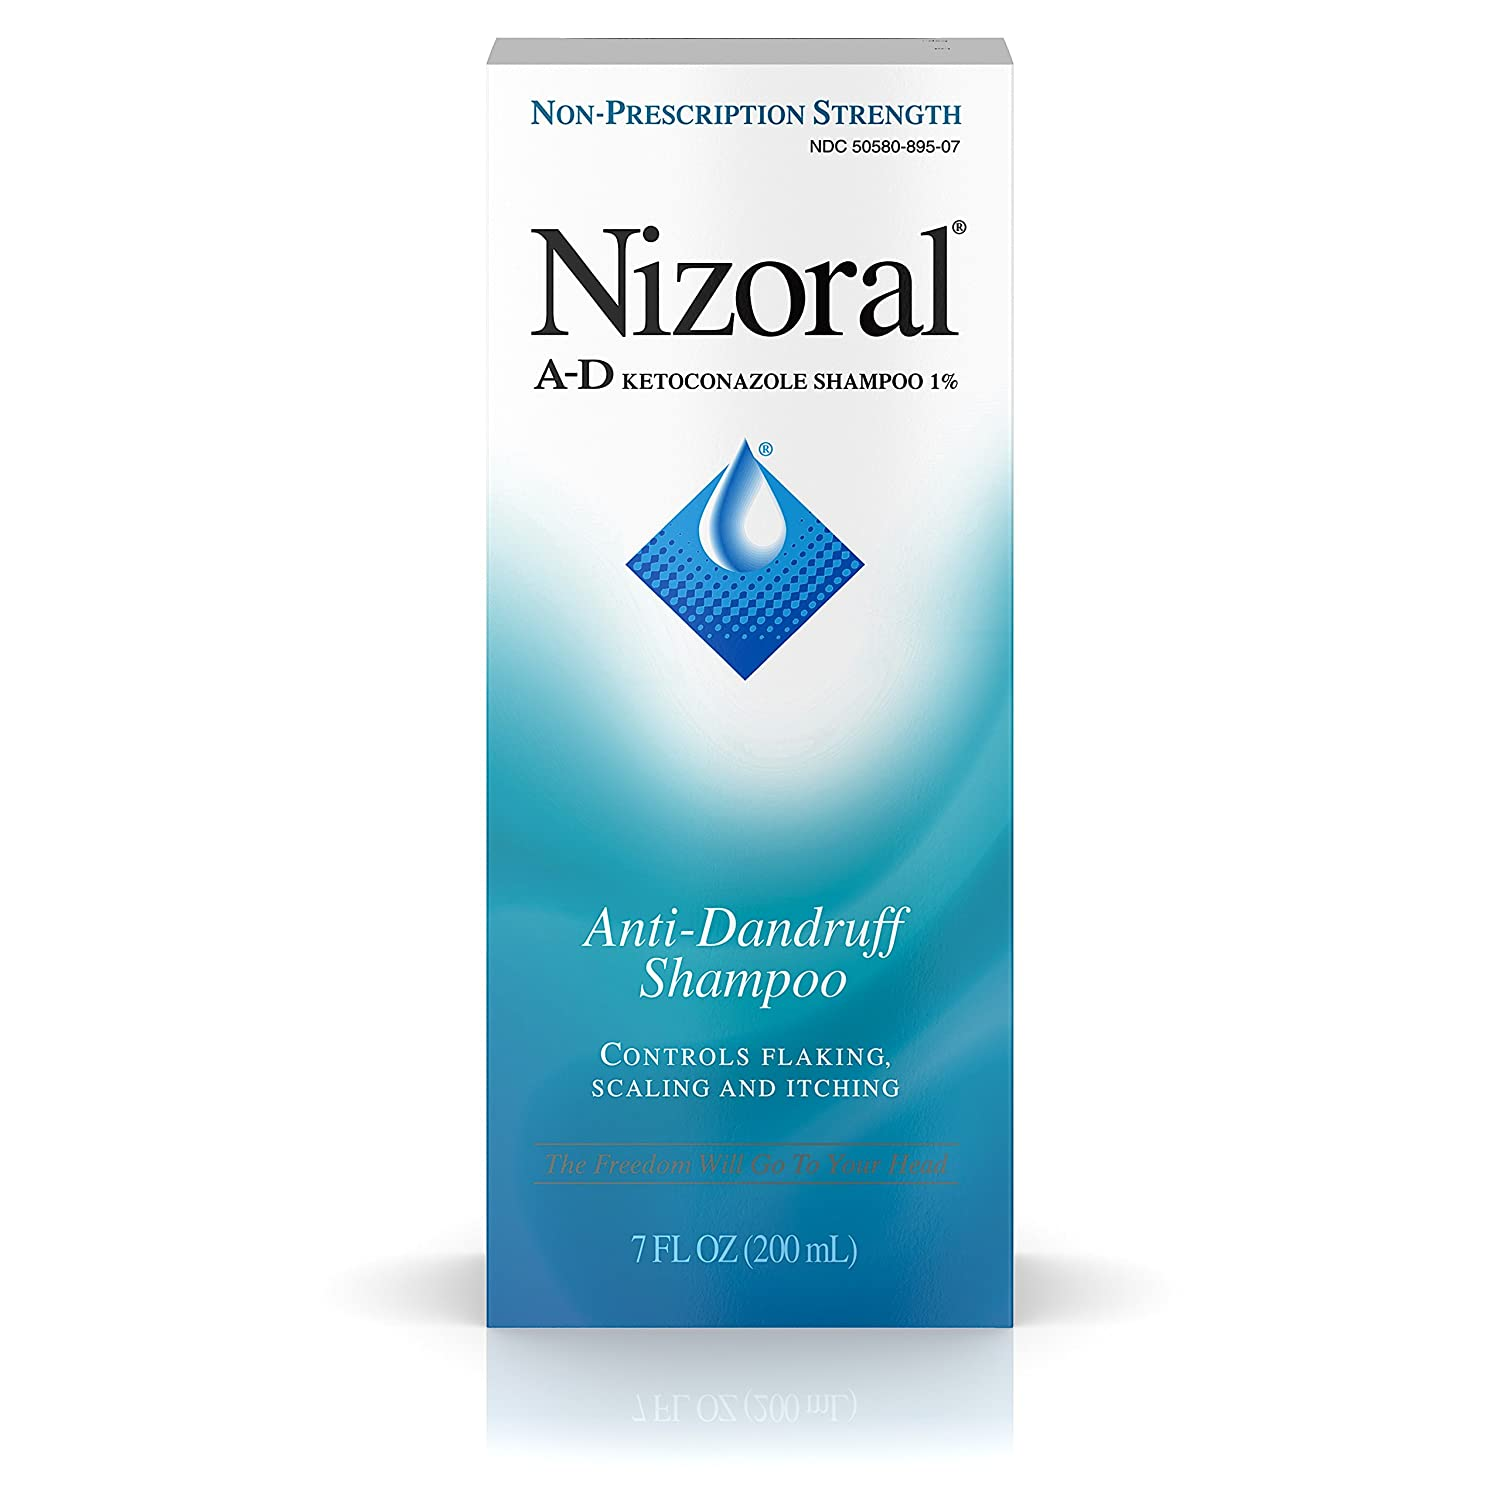 Nizoral A-D Anti-Dandruff Shampoo | Best natural hair growth products 2018